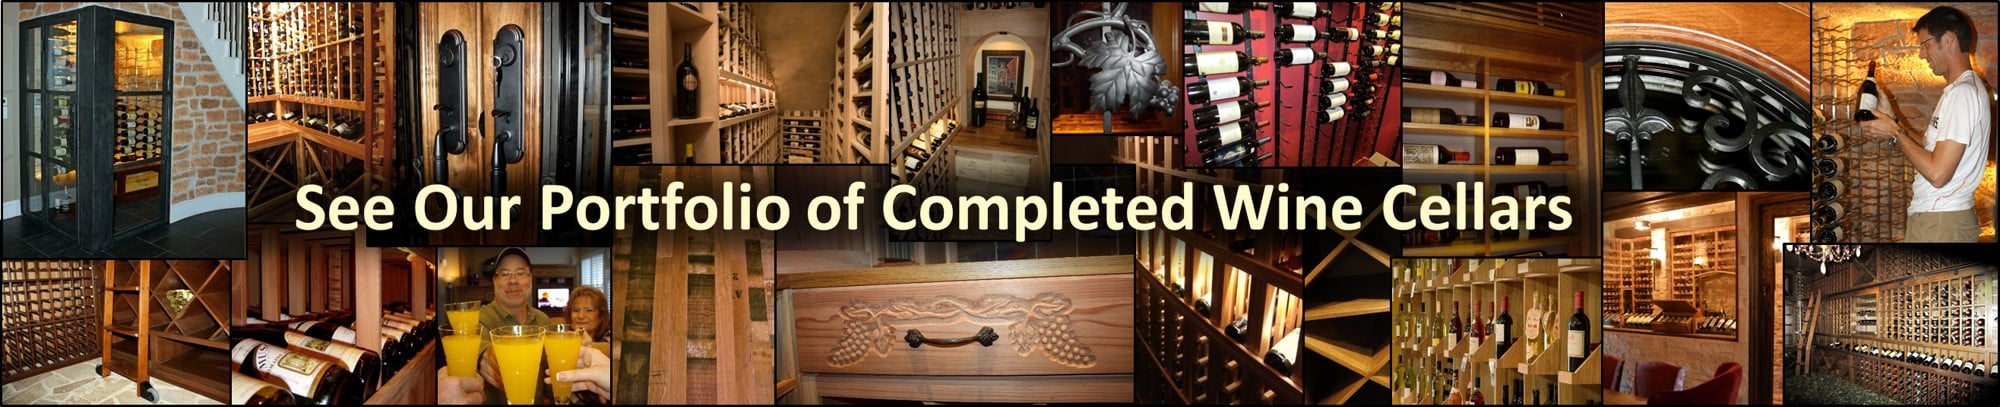 Portfolio of Completed Wine Cellars WCS